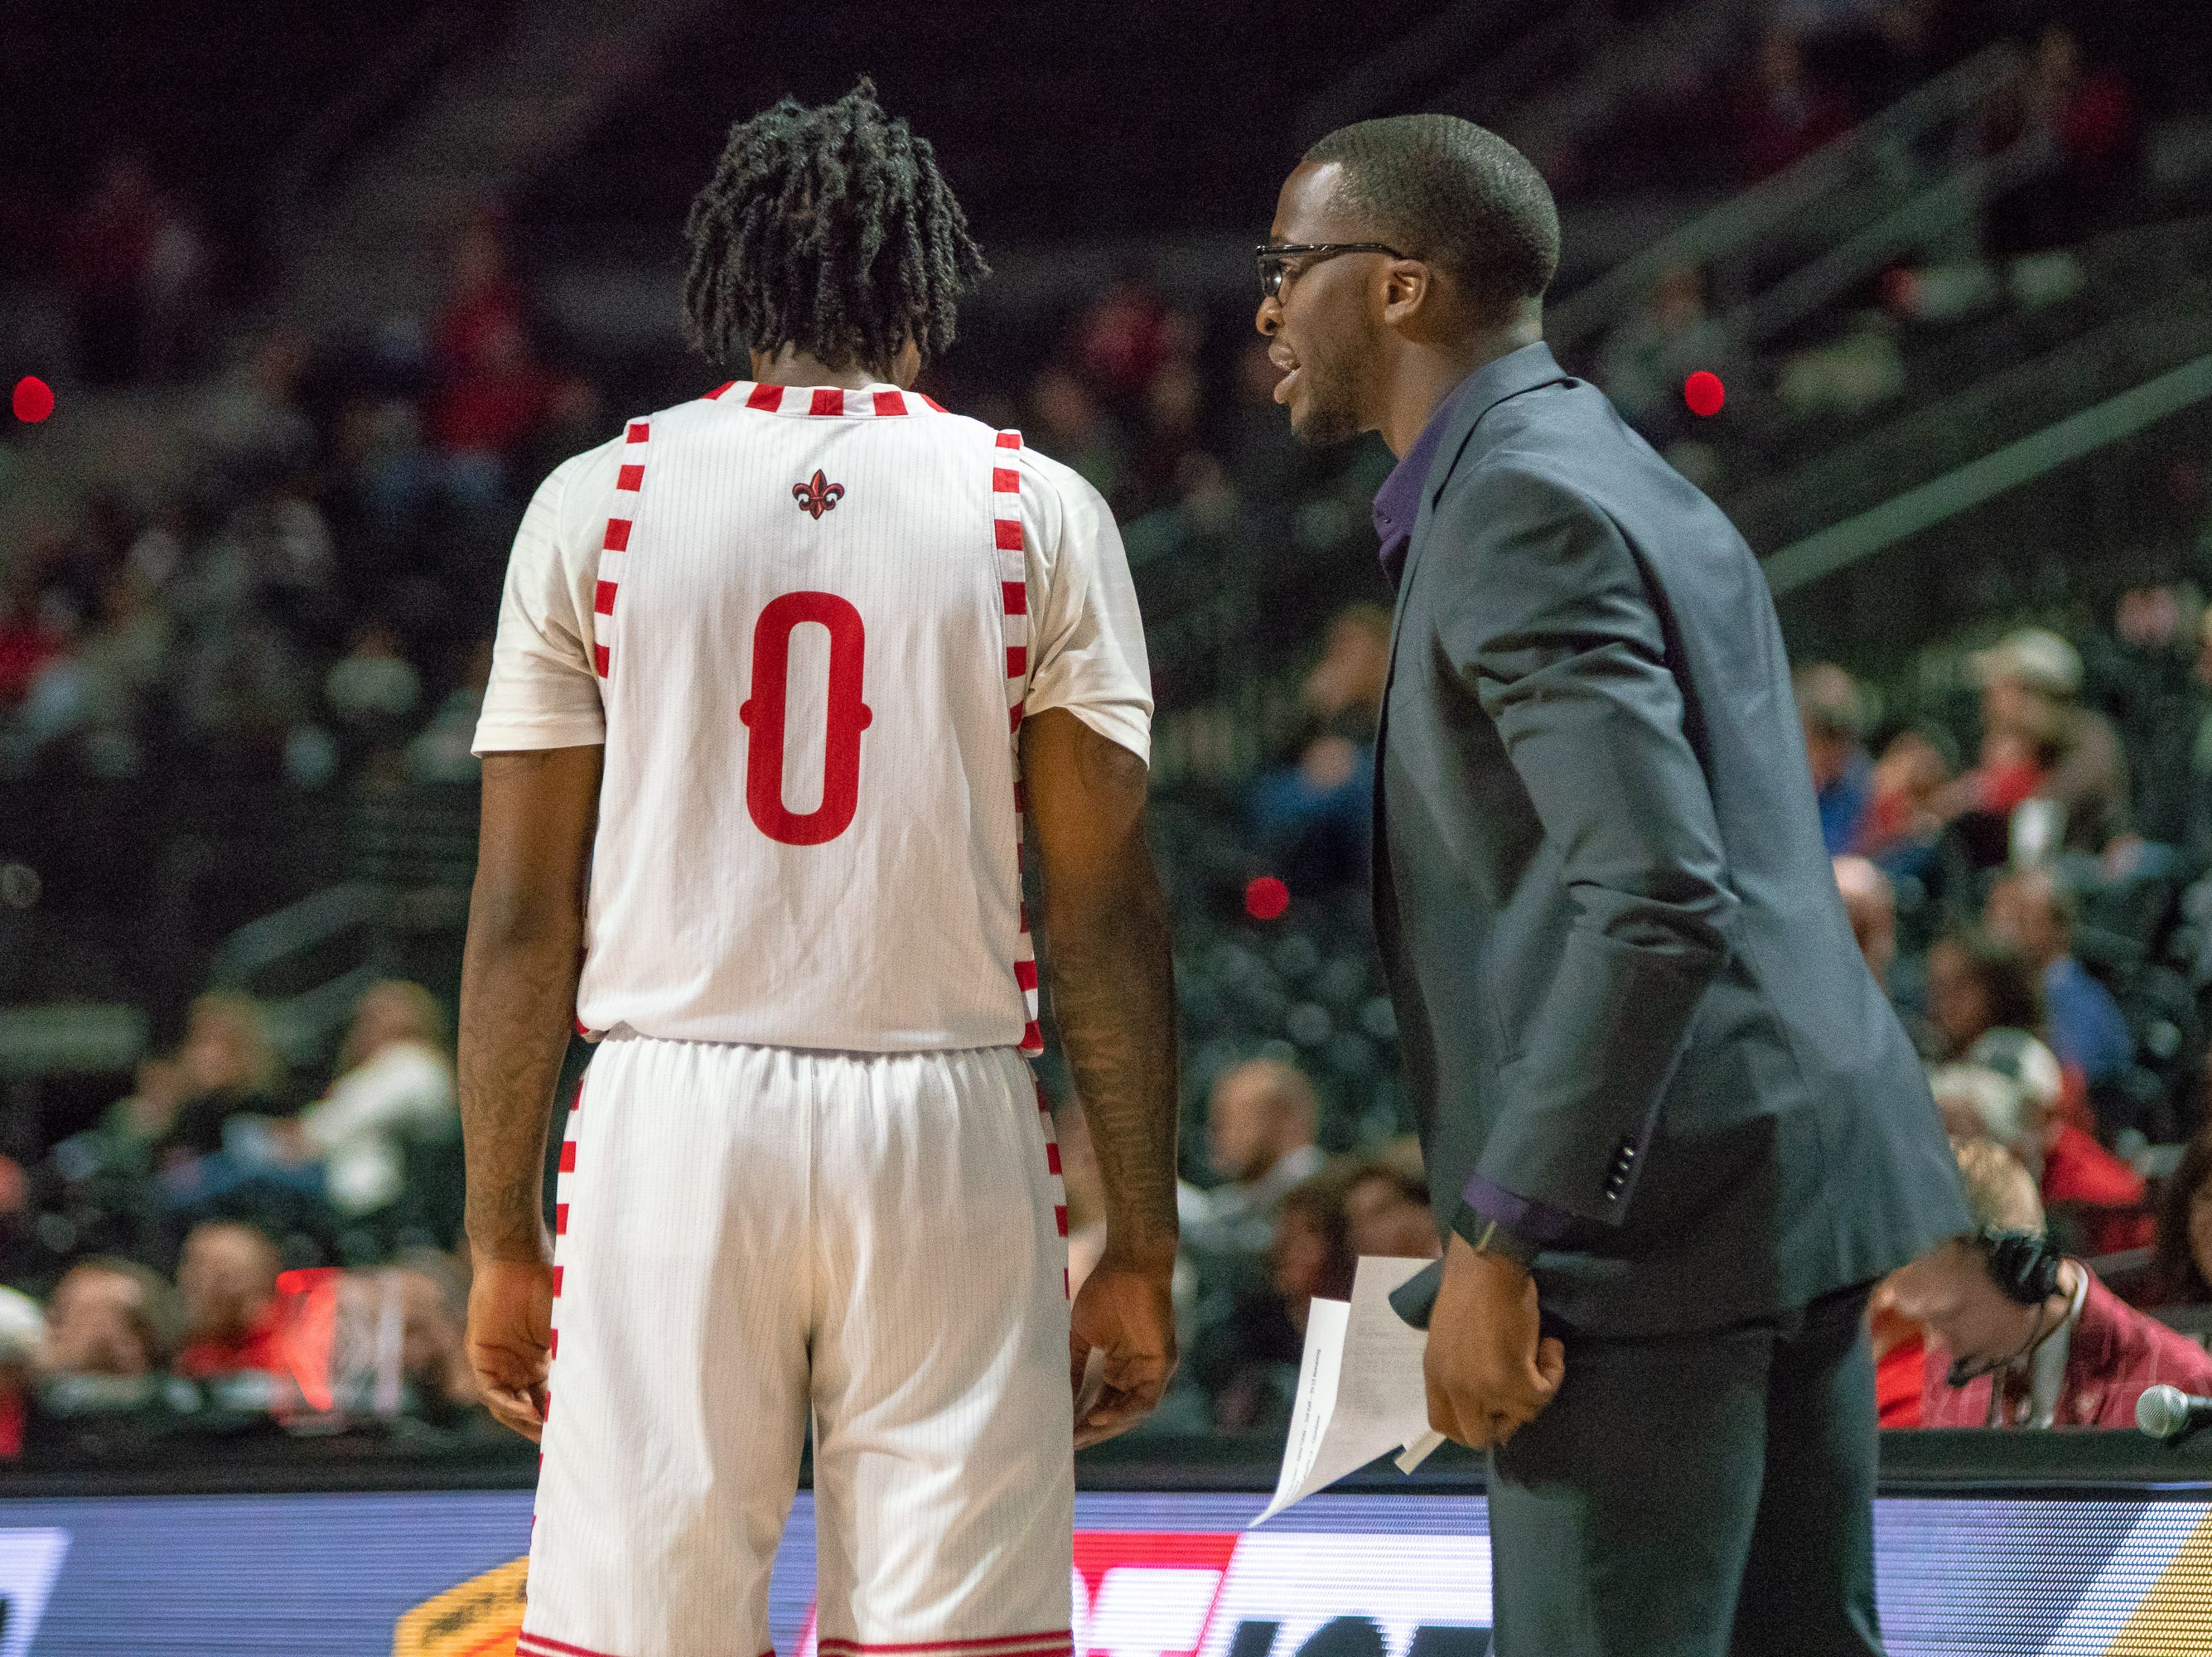 UL's assistant coach Josten Crow talks to Cedric Russell on the sidelines as the Ragin' Cajuns take on the Little Rock Trojans at the Cajundome on January 5, 2019.